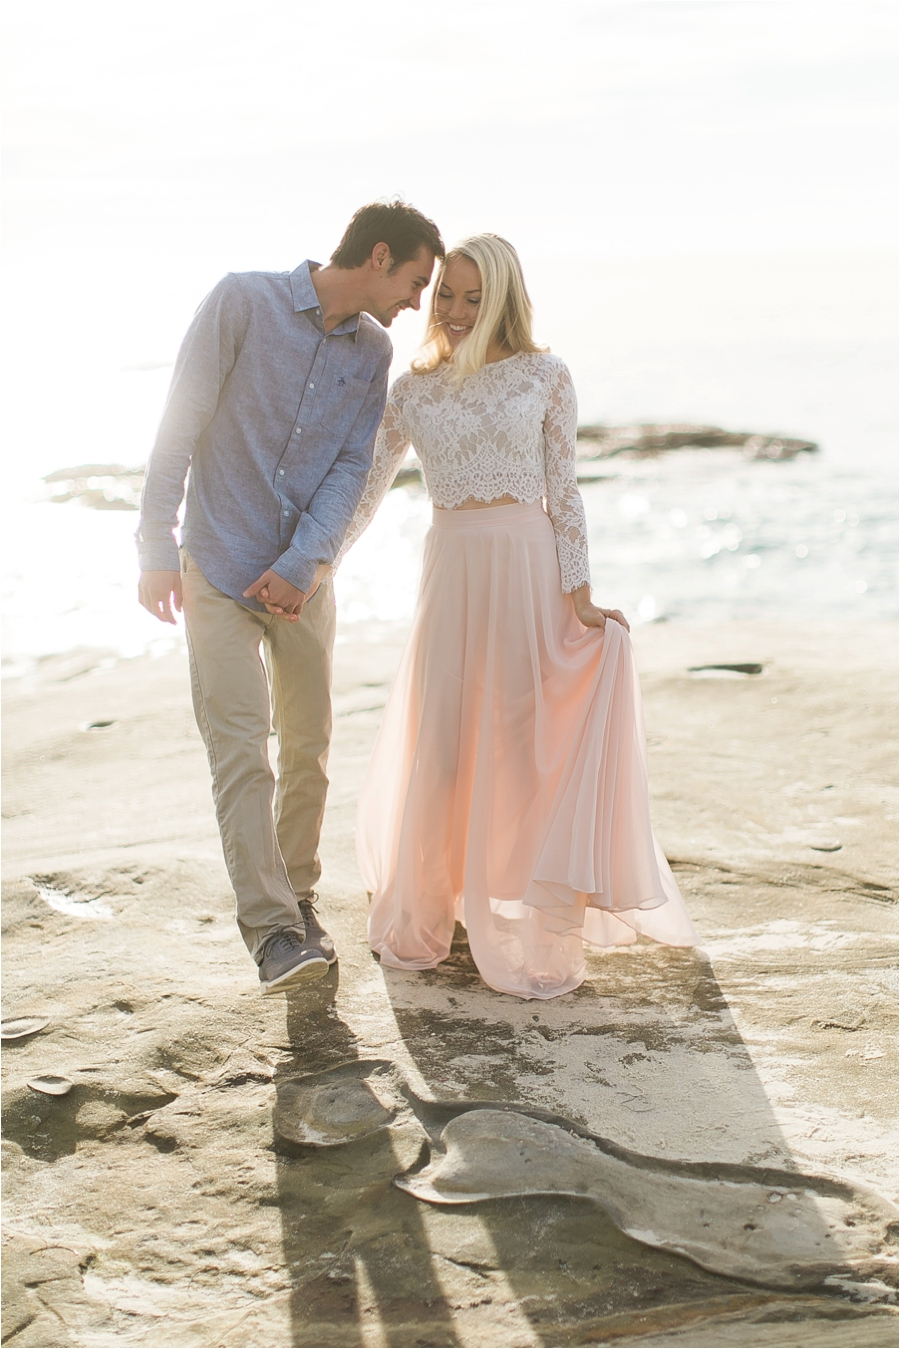 San_Diego_Wedding_Photographer_Engagement_Session_Taylor_Kinzie_Photography_0925